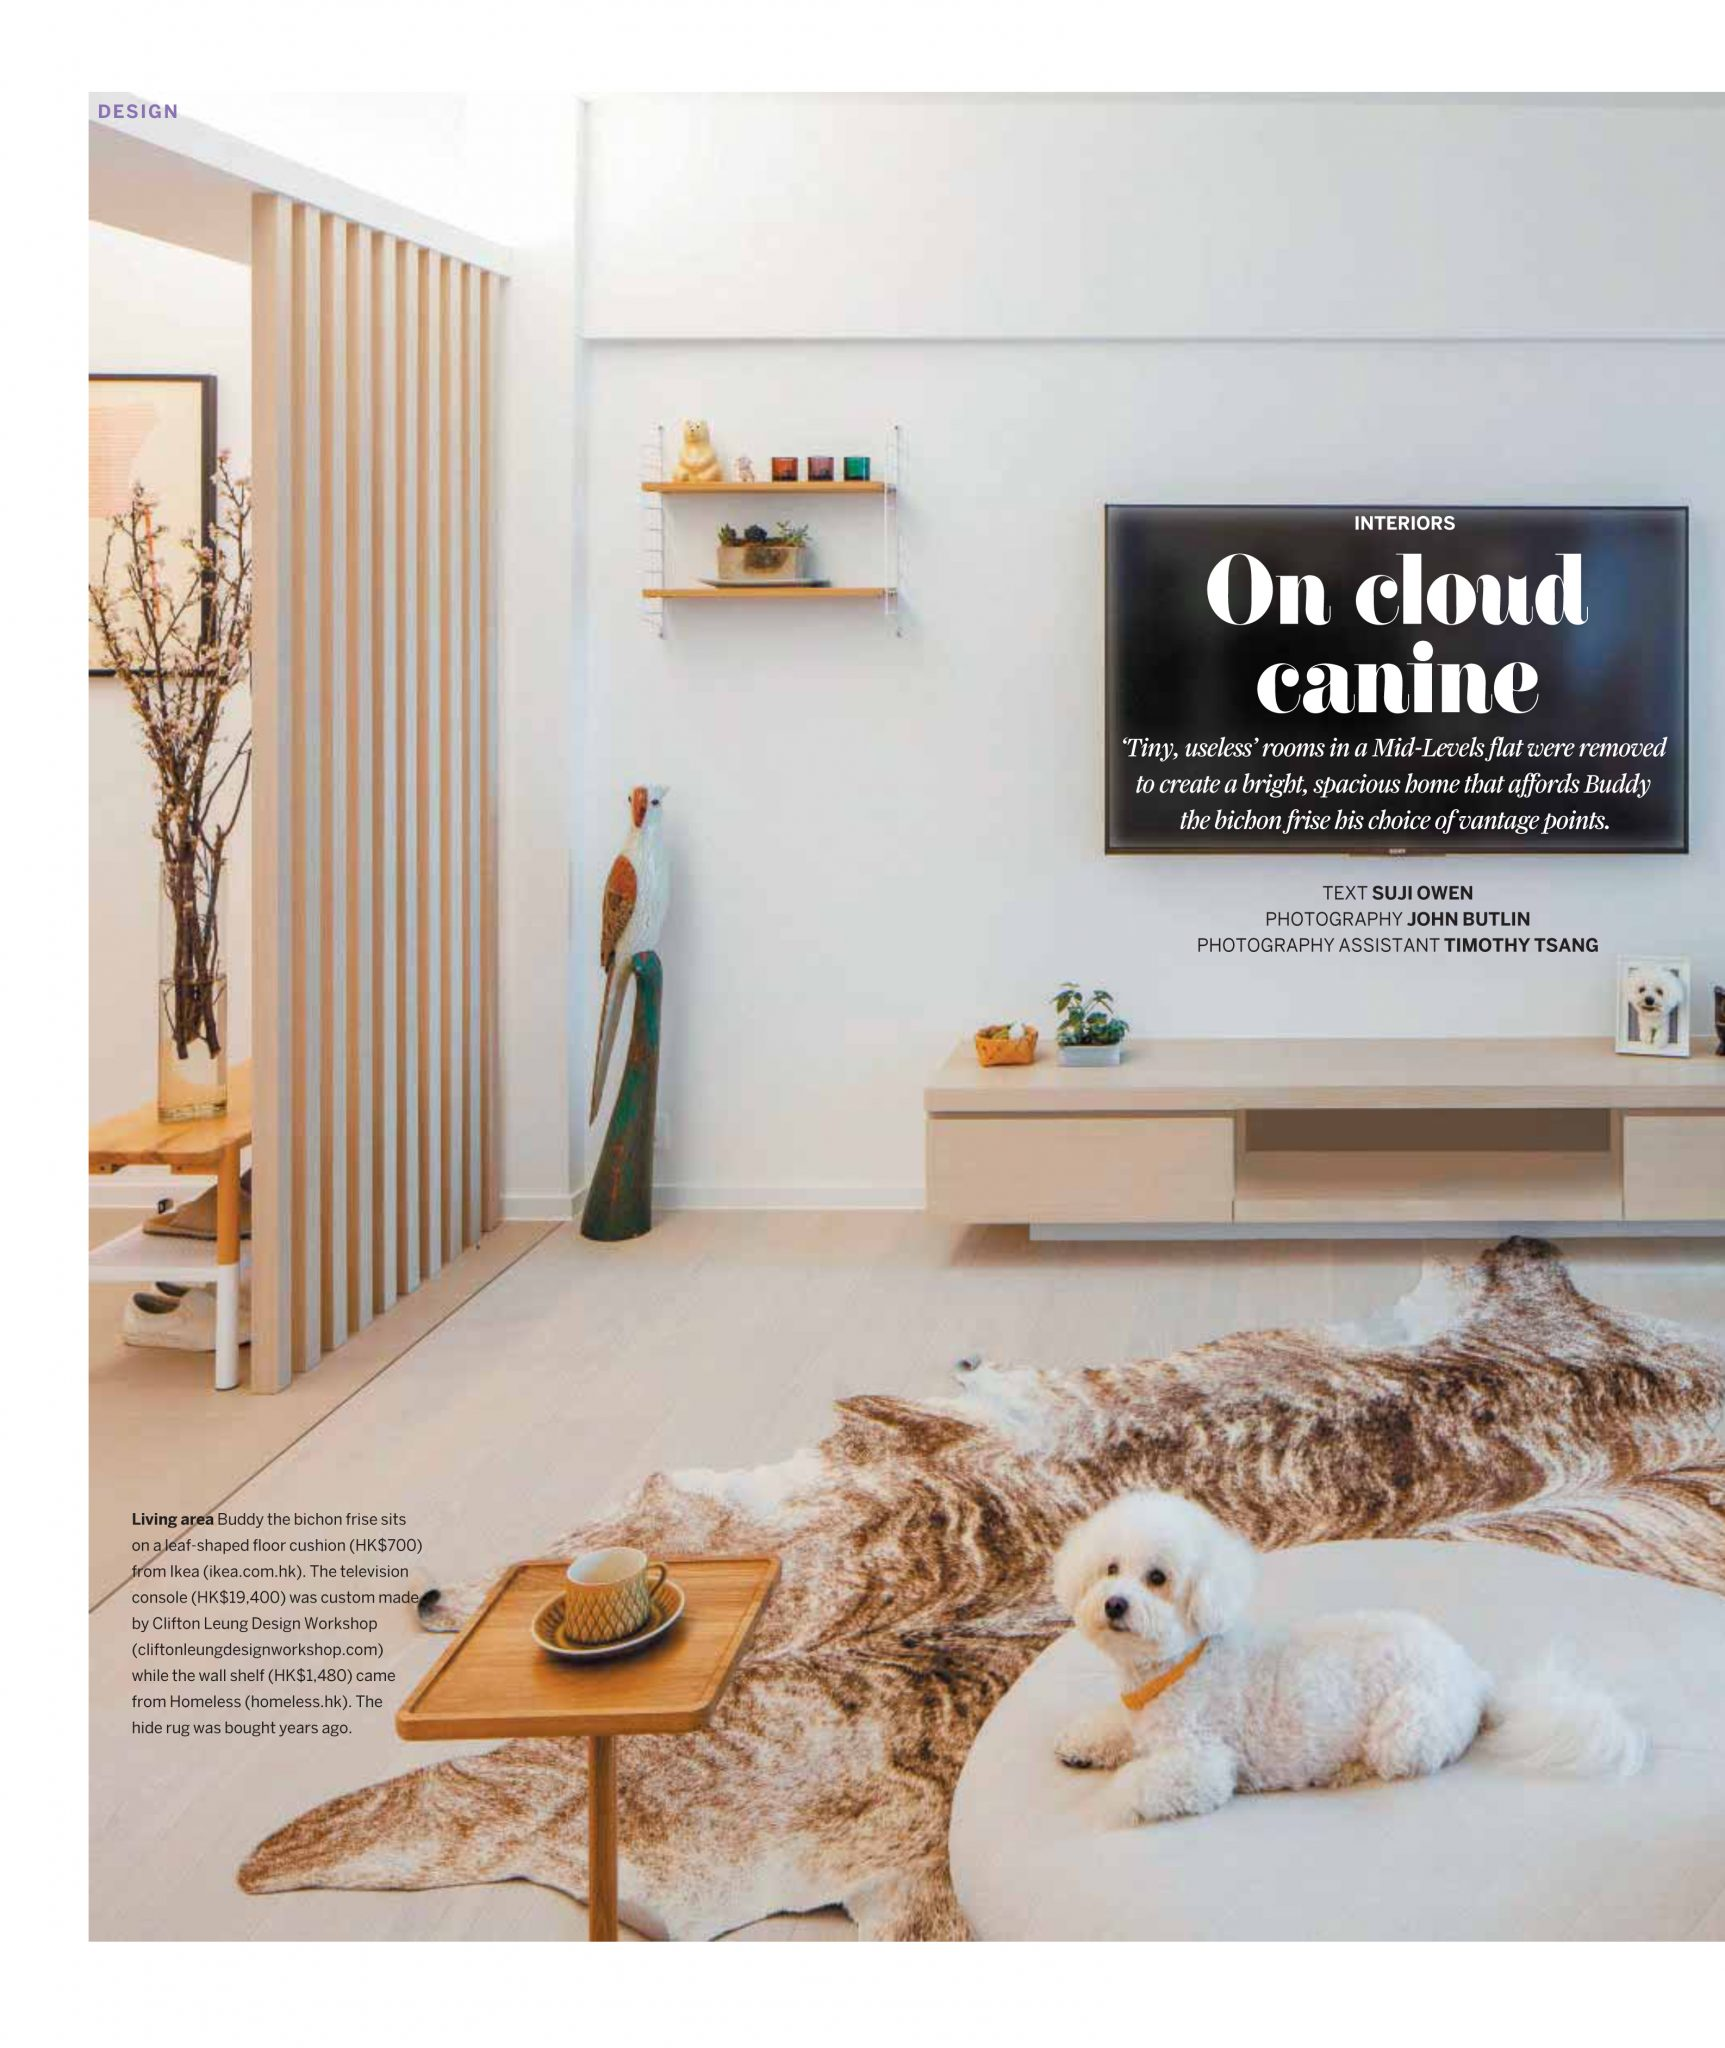 Dog friendly home SCMP Post Magazine Aug 2019